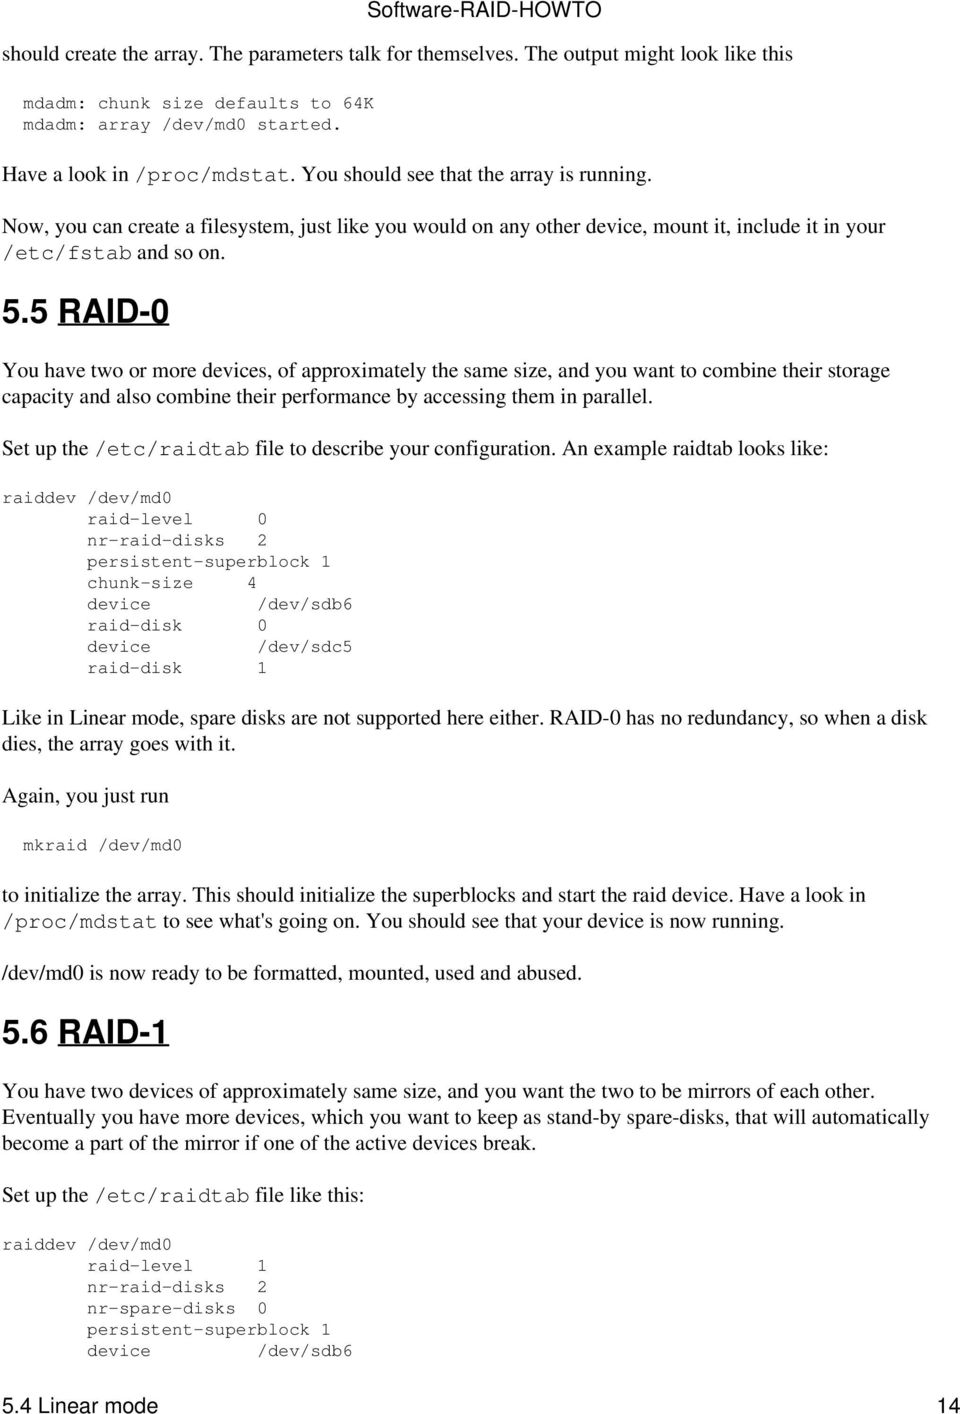 5 RAID-0 You have two or more s, of approximately the same size, and you want to combine their storage capacity and also combine their performance by accessing them in parallel.